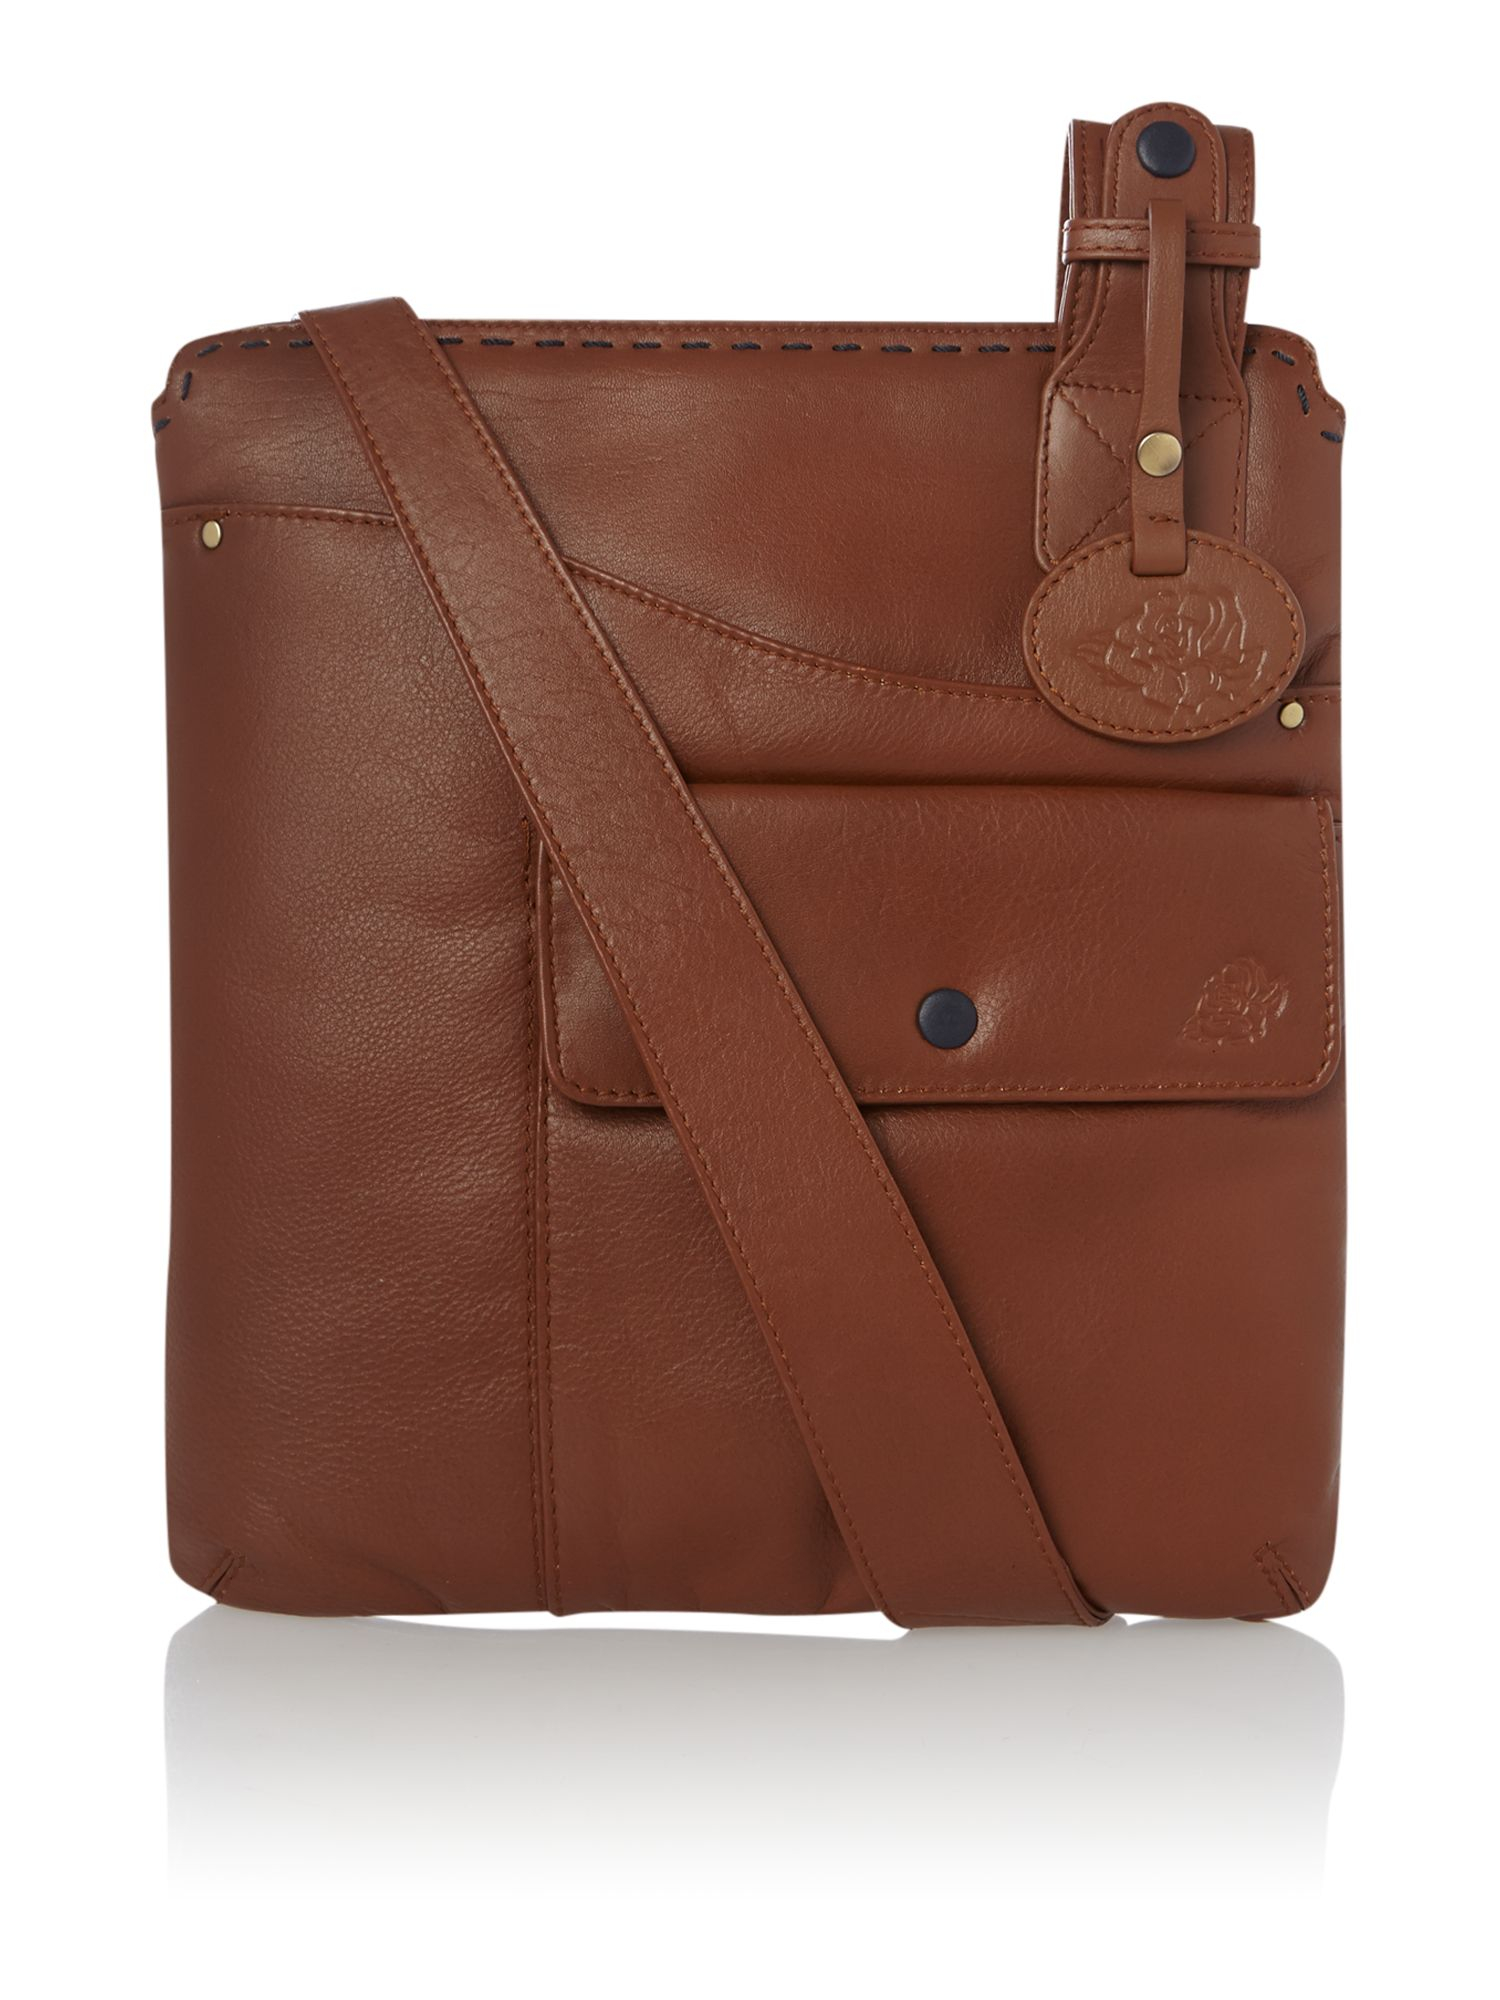 Aitbags Purses and Handbags for Women Tote with Shoulder Strap Big Crossbody Bag. by Aitbags. $ - $ $ 28 $ 29 99 Prime. FREE Shipping on eligible orders. Some colors are Prime eligible. out of 5 stars Product Features.